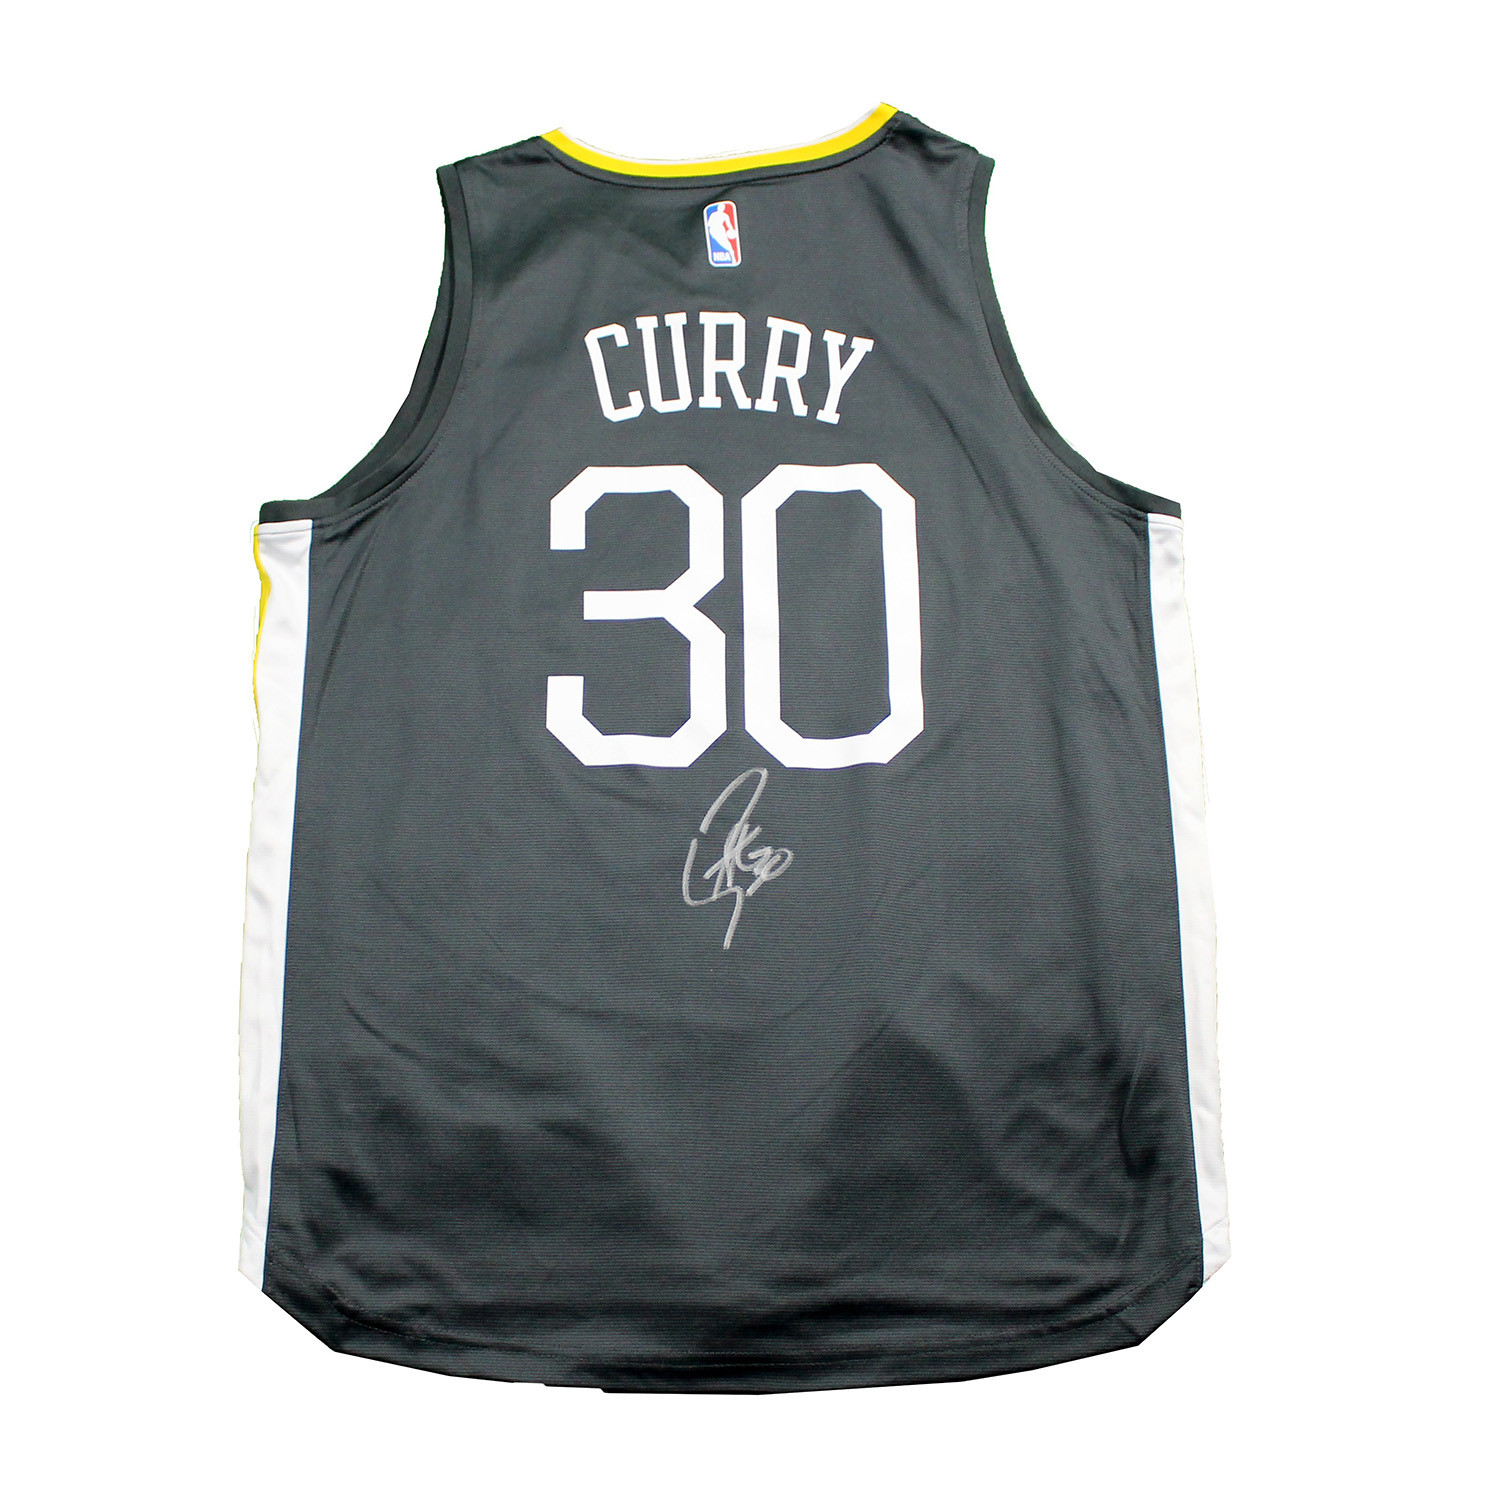 huge selection of b9b4c bf2e8 Stephen Curry Signed Golden State Warriors Replica Jersey ...